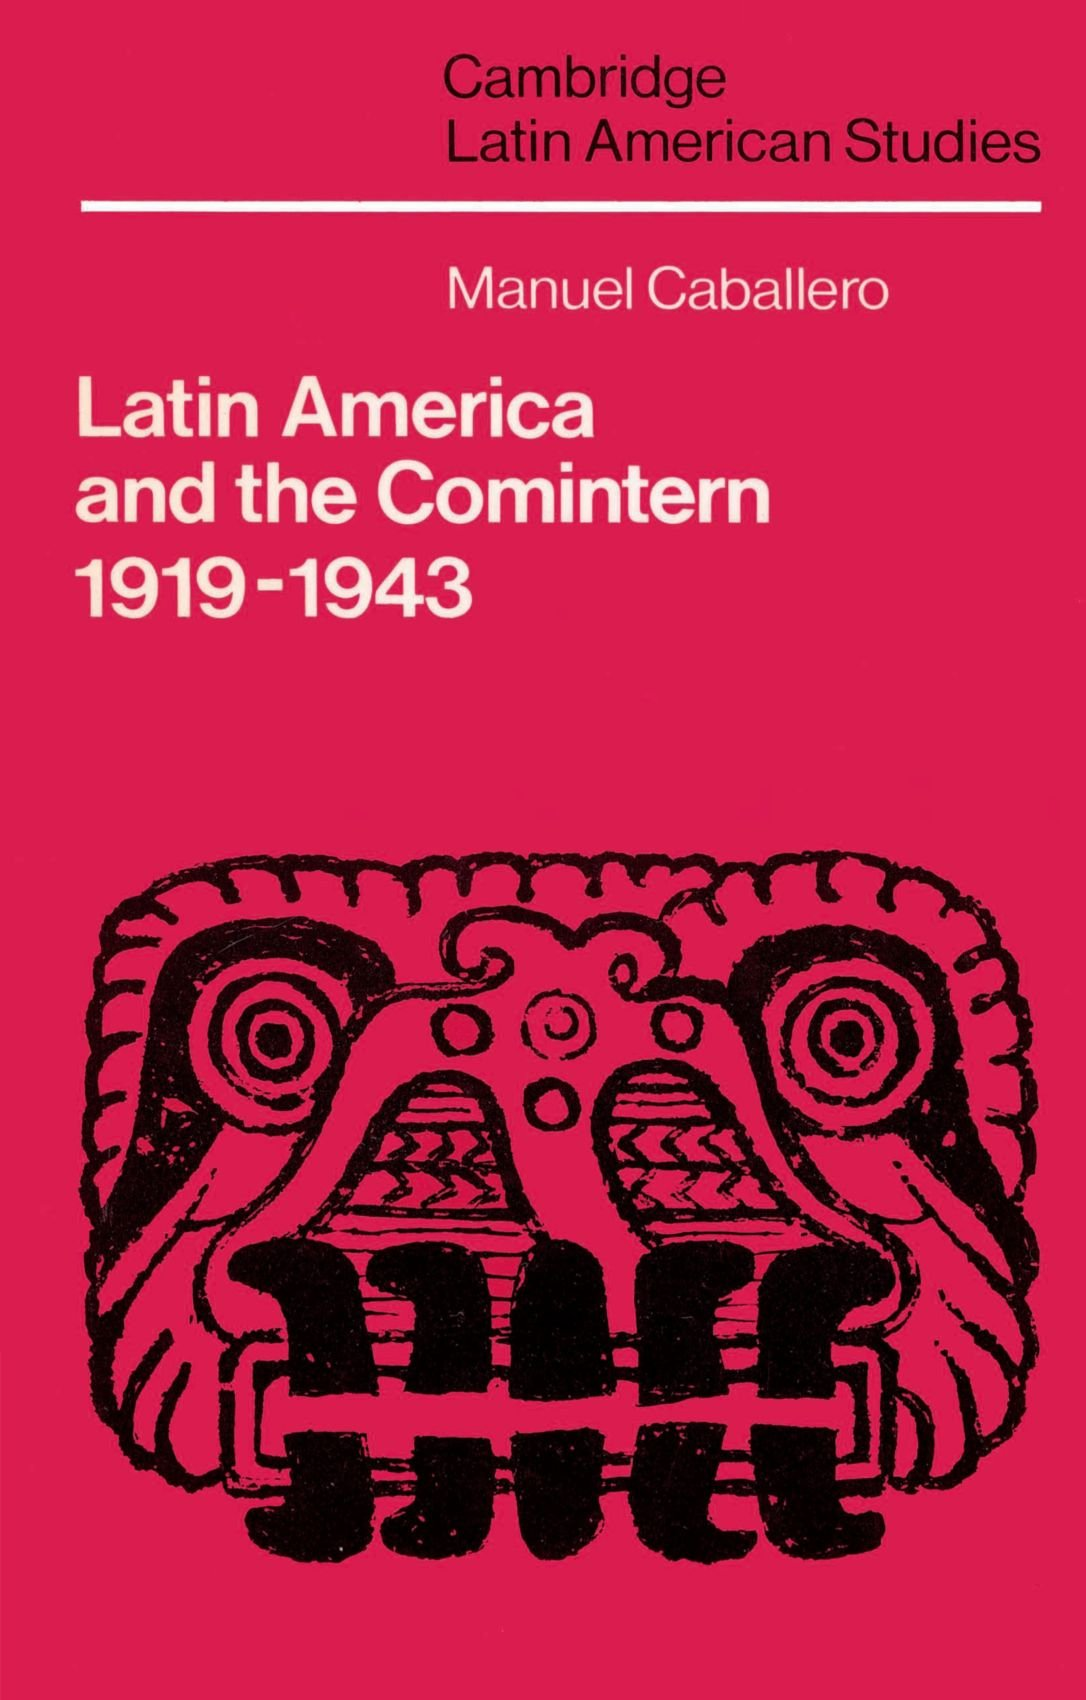 Latin America and the Comintern, 1919-1943 (Cambridge Latin American Studies) pdf epub